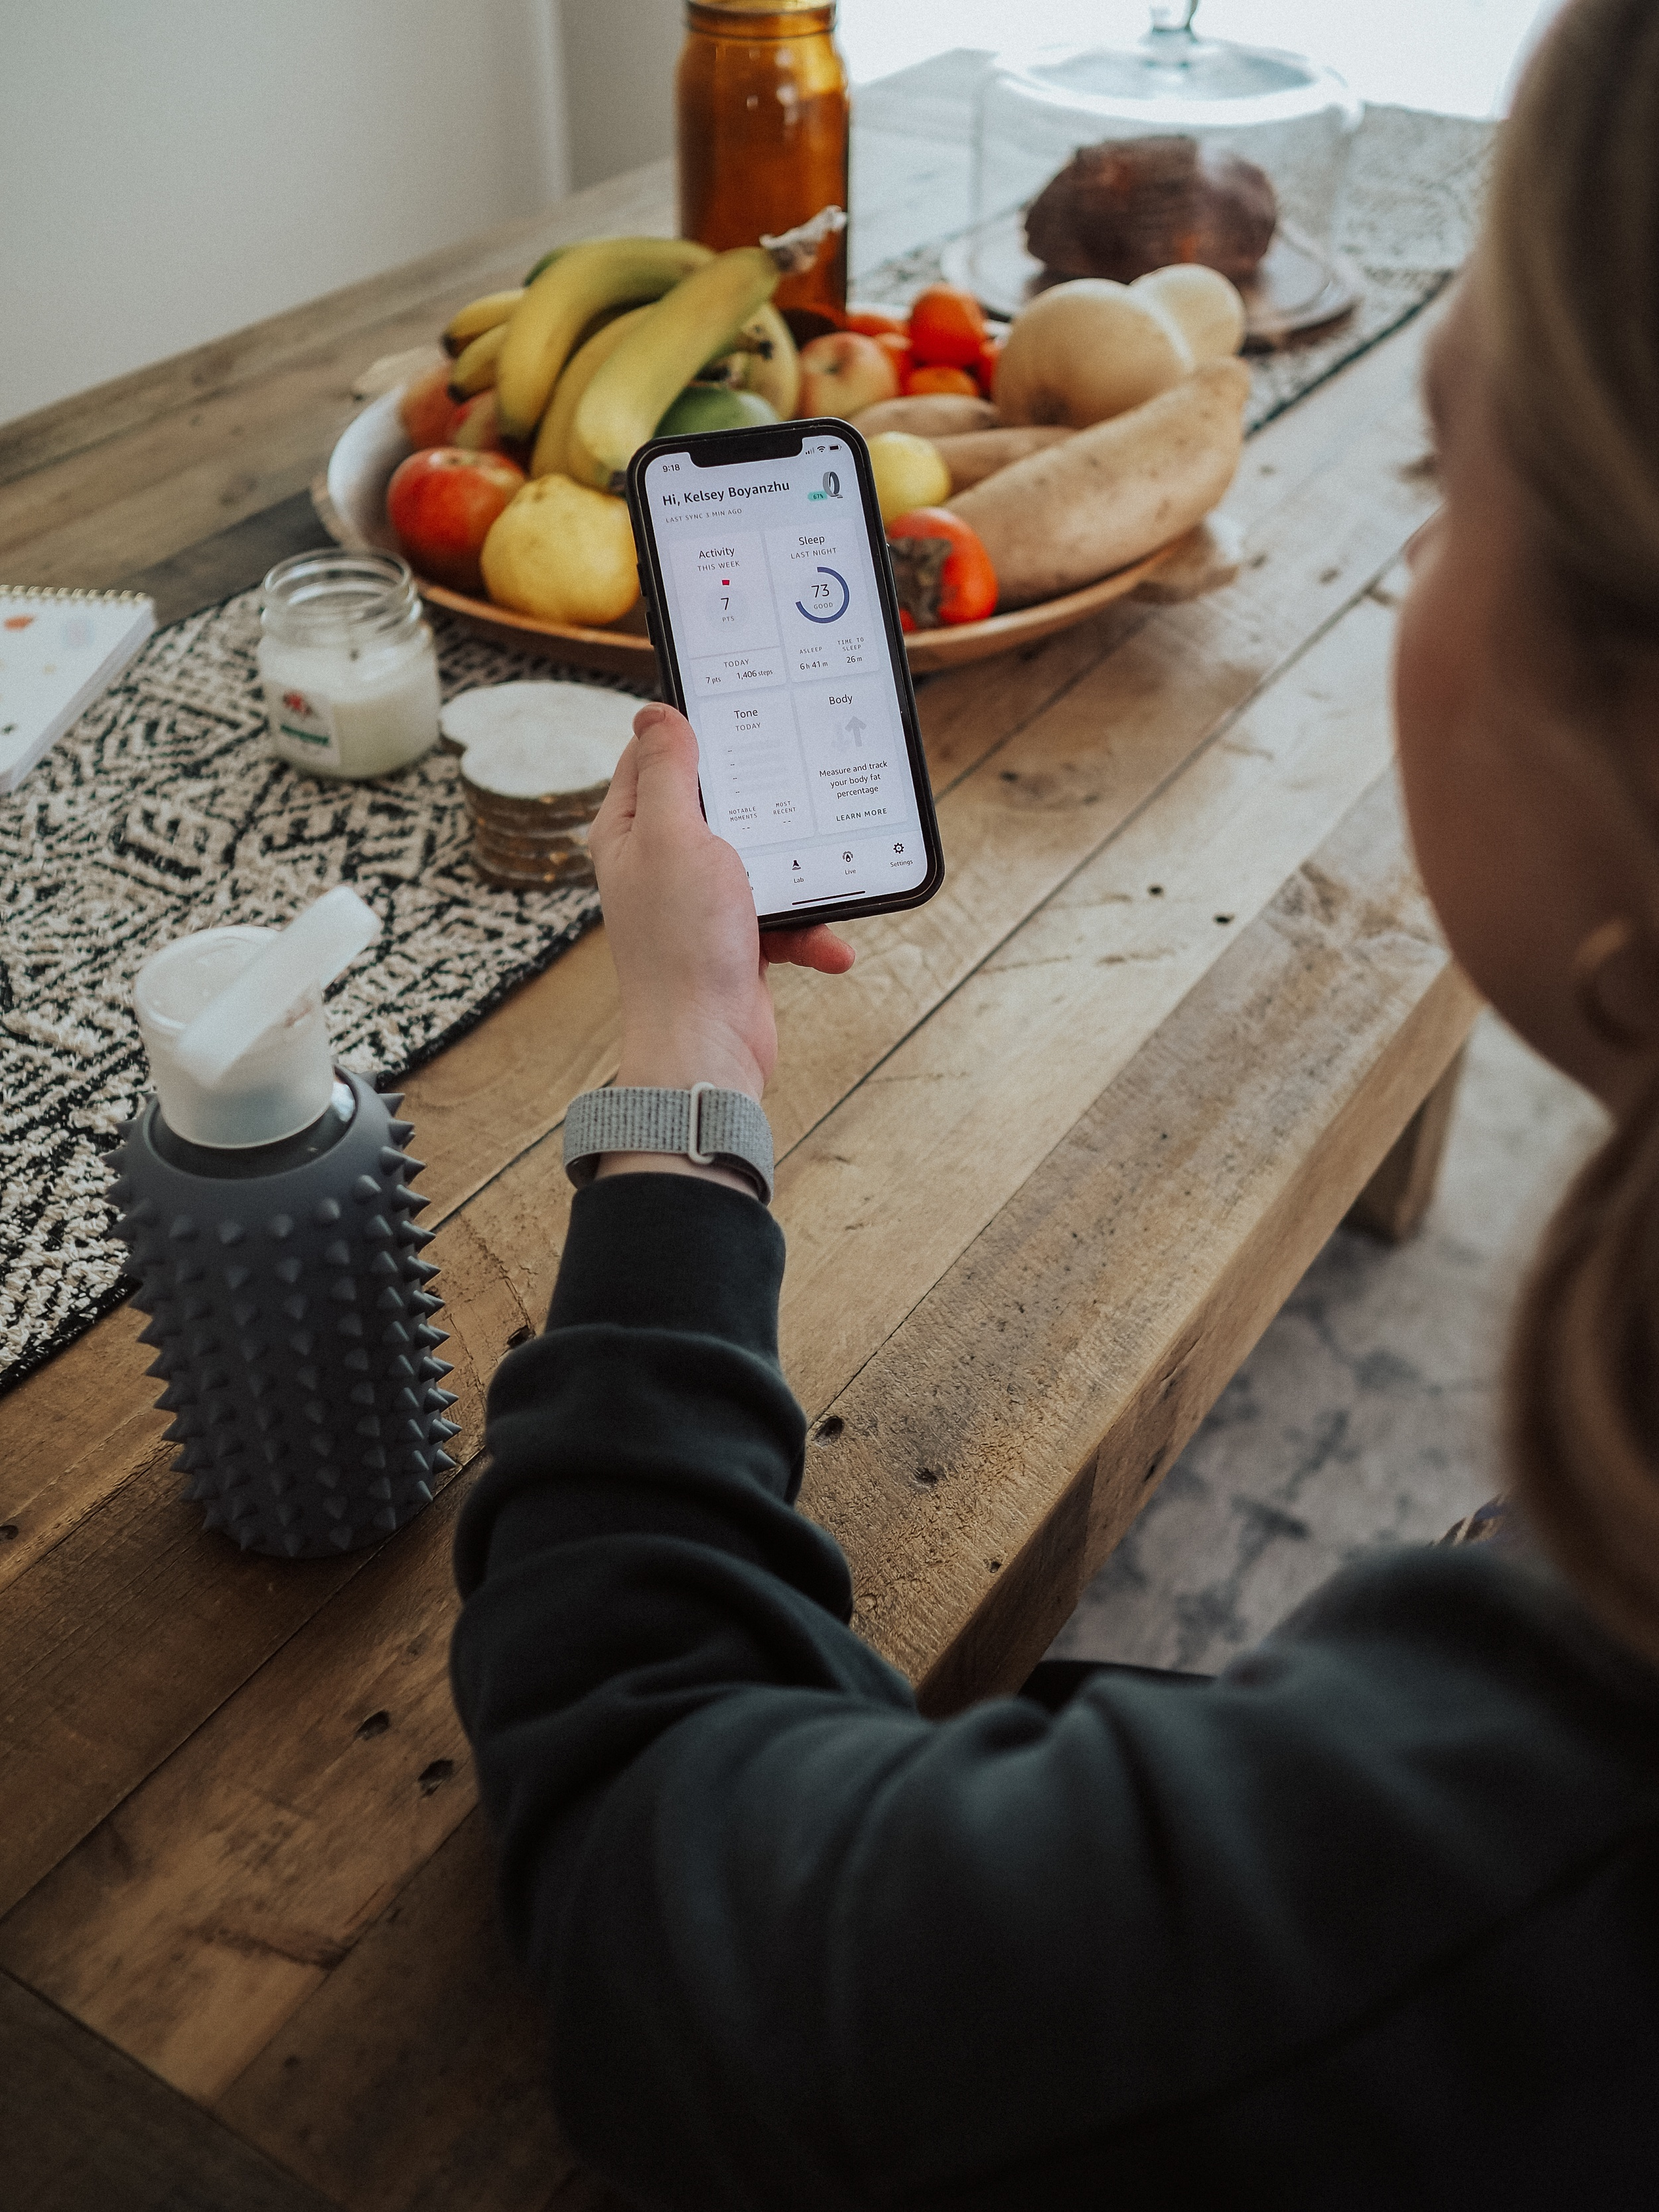 Kelsey from Blondes & Bagels talks about Amazon's latest fitness wearable in this Amazon Halo review! Find out if it's worth the price.